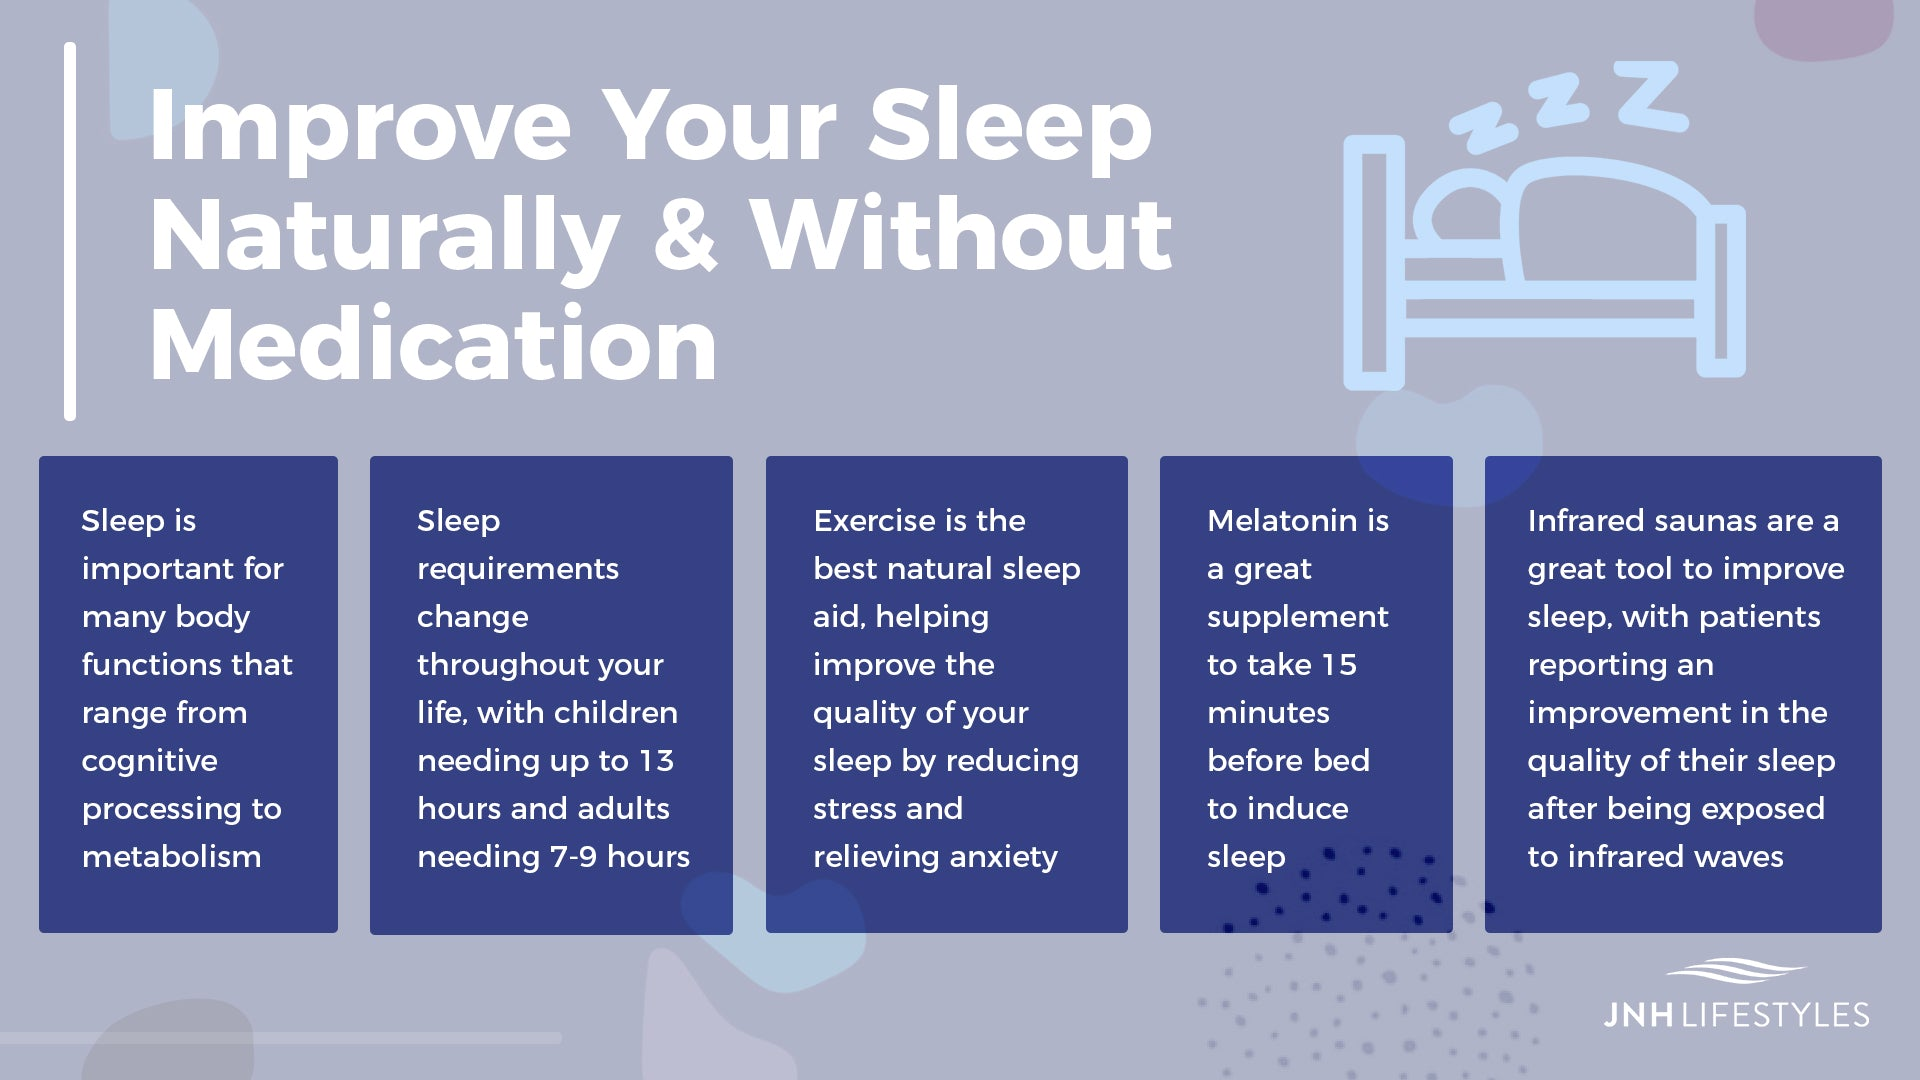 Improve Your Sleep Naturally & Without Medication -Sleep is important for many body functions that range from cognitive processing to metabolism -Sleep requirements change throughout your life, with children needing up to 13 hours and adults needing 7-9 hours -Exercise is the best natural sleep aid, helping improve the quality of your sleep by reducing stress and relieving anxiety -Melatonin is a great supplement to take 15 minutes before bed to induce sleep -Infrared saunas are a great tool to improve sleep, with patients reporting an improvement in the quality of their sleep after being exposed to infrared waves